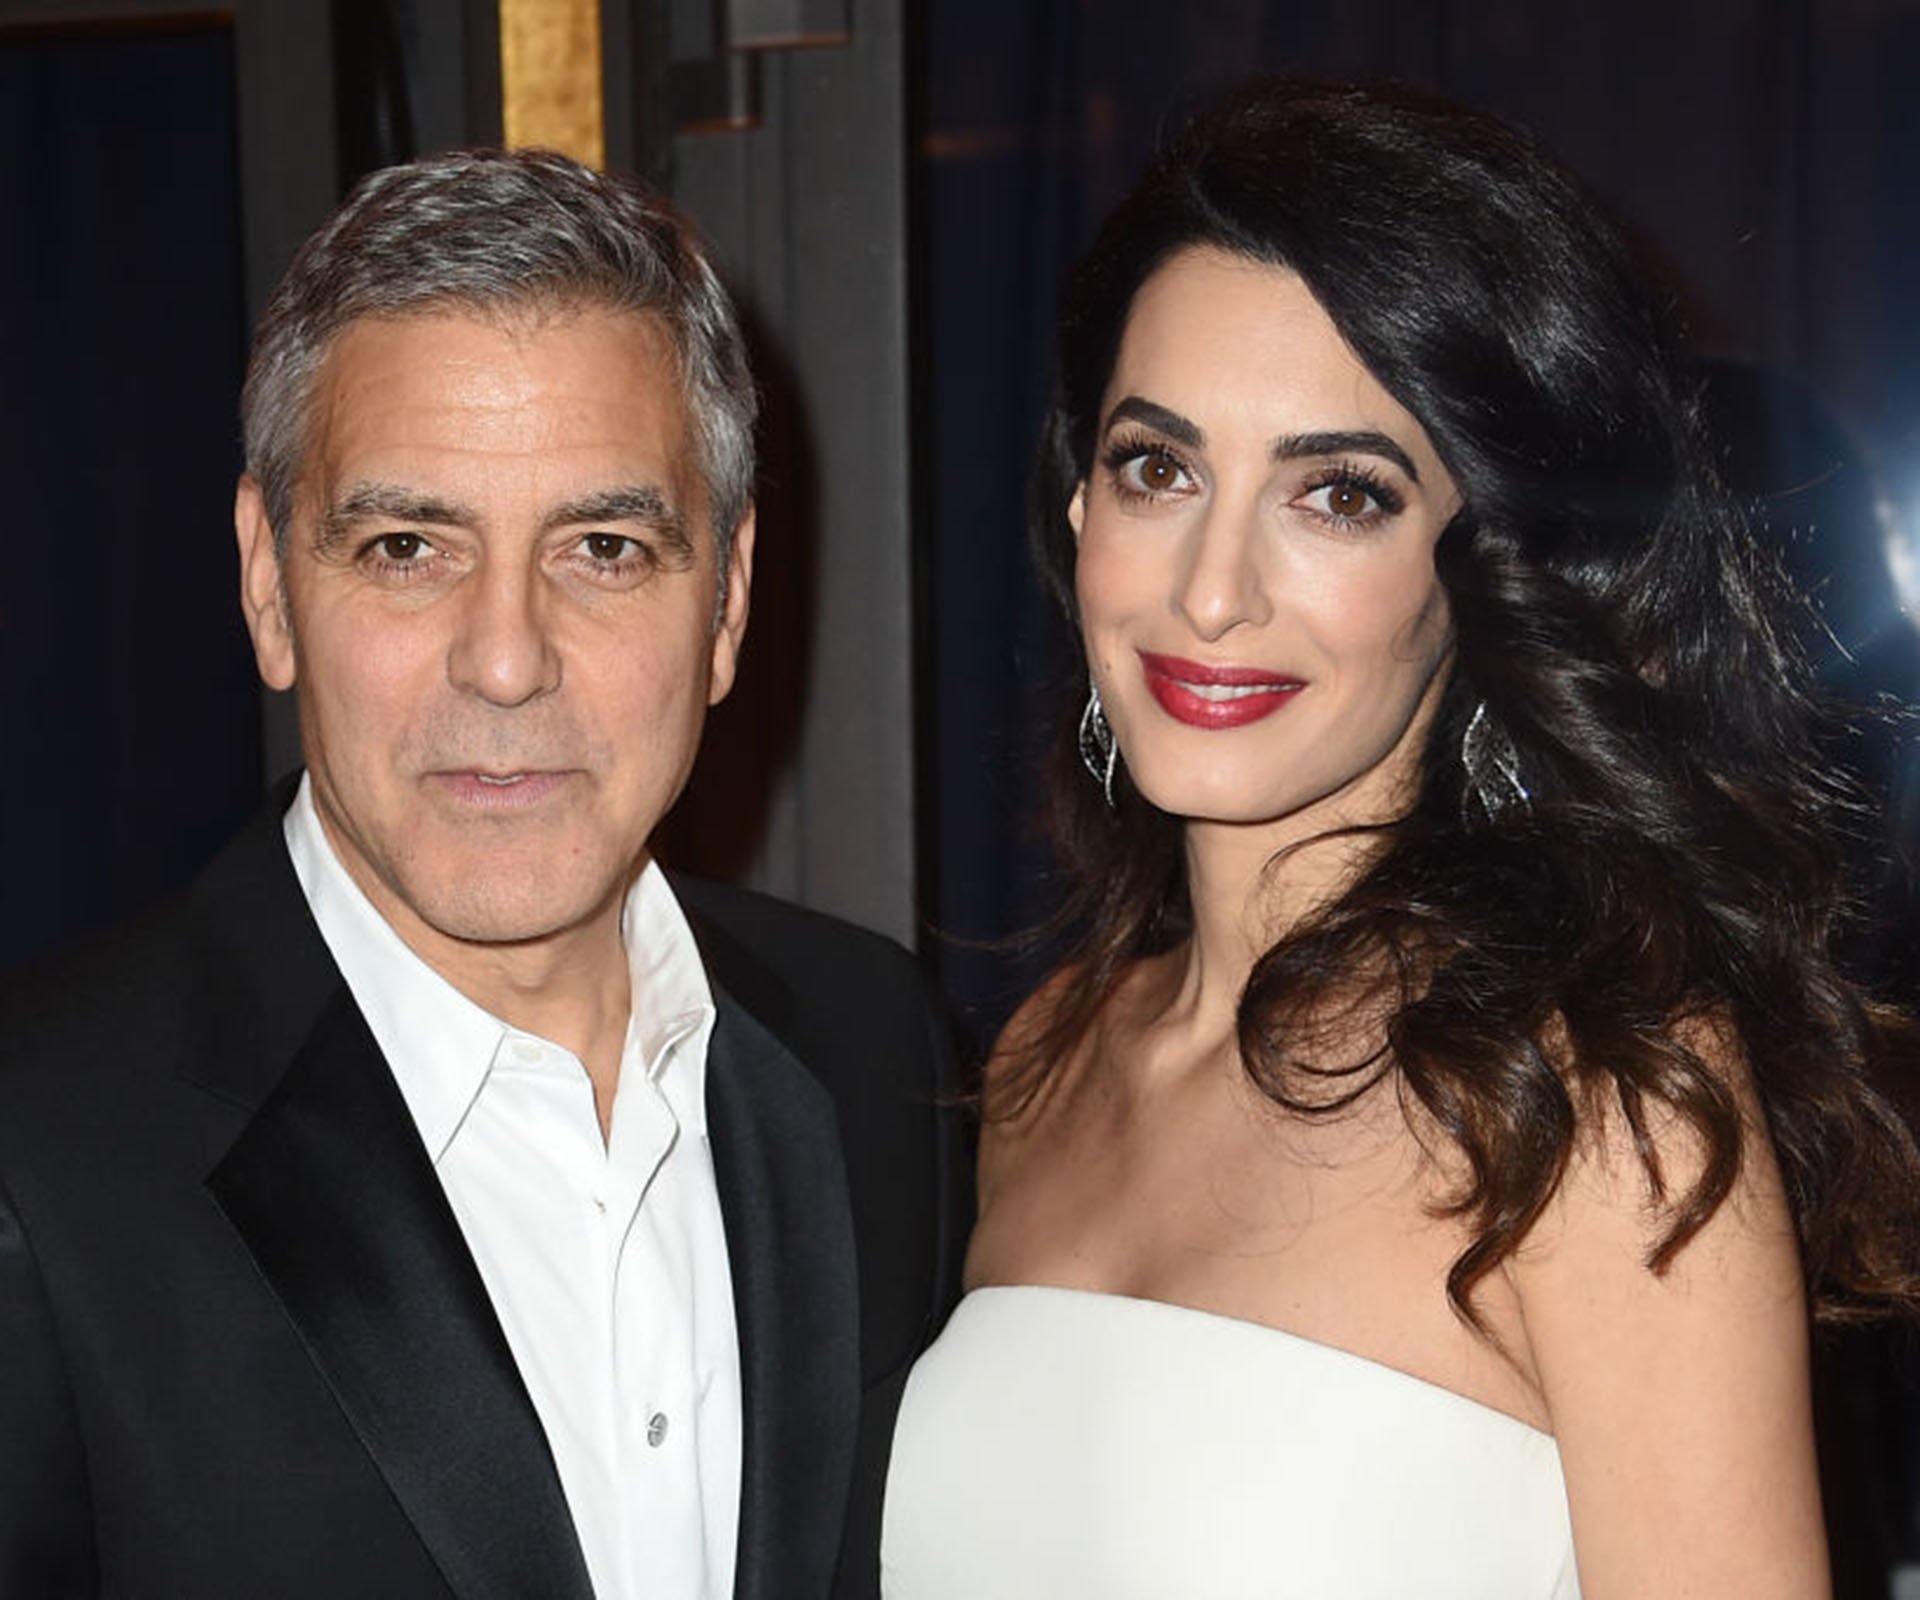 George Clooney: There's a Bounty for Twins' Pic, But We'd Rather Not